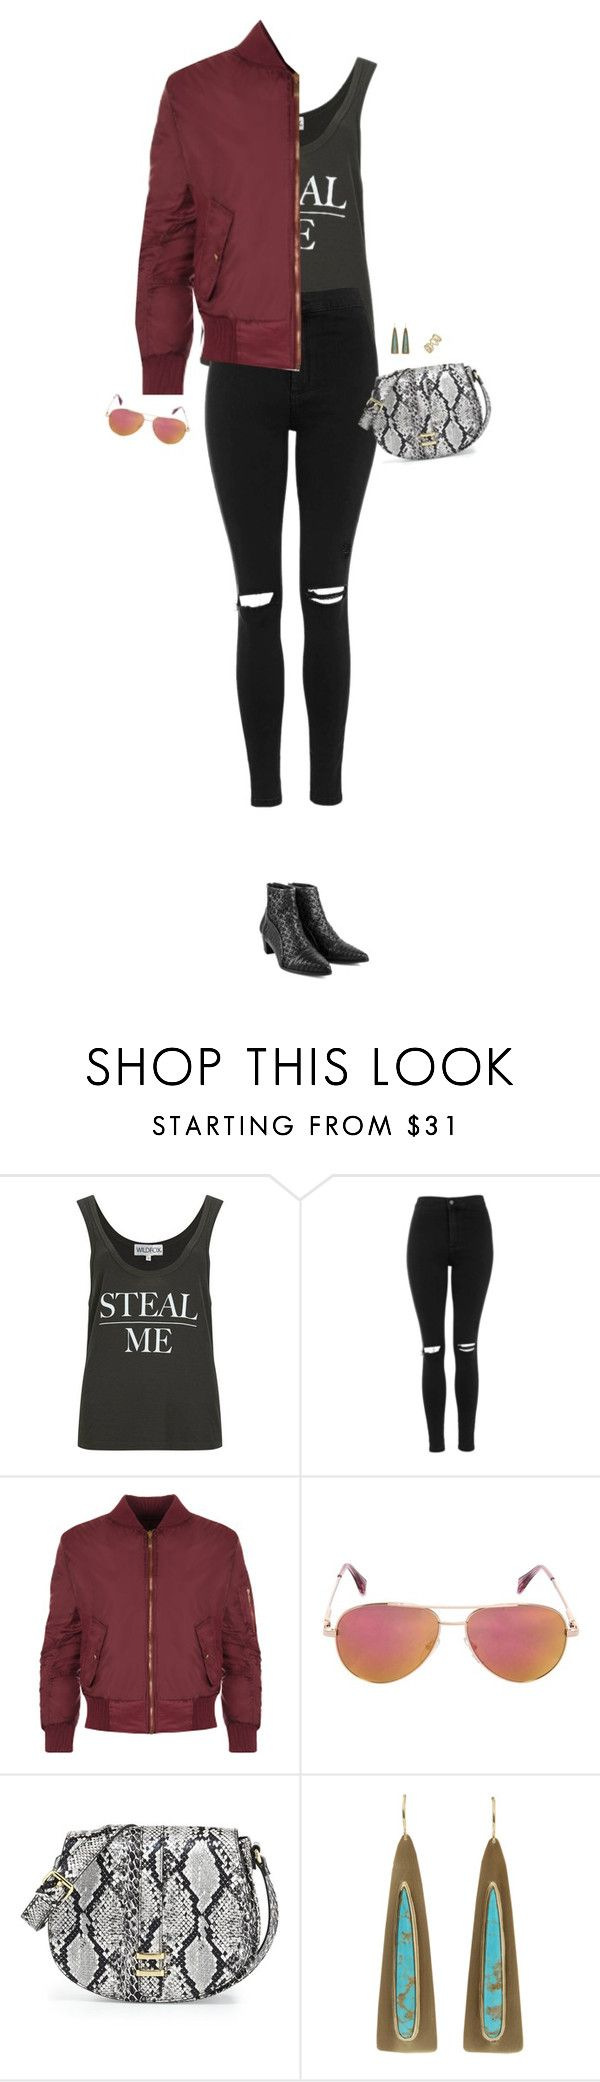 """""""How to Style a Maroon Bomber Jacket with Black Denim Jeans and Black Booties"""" by outfitsfortravel ❤ liked on Polyvore featuring Wildfox, Topshop, WearAll, Cutler and Gross, Neiman Marcus, Irene Neuwirth, NEXTE Jewelry, women's clothing, women and female"""